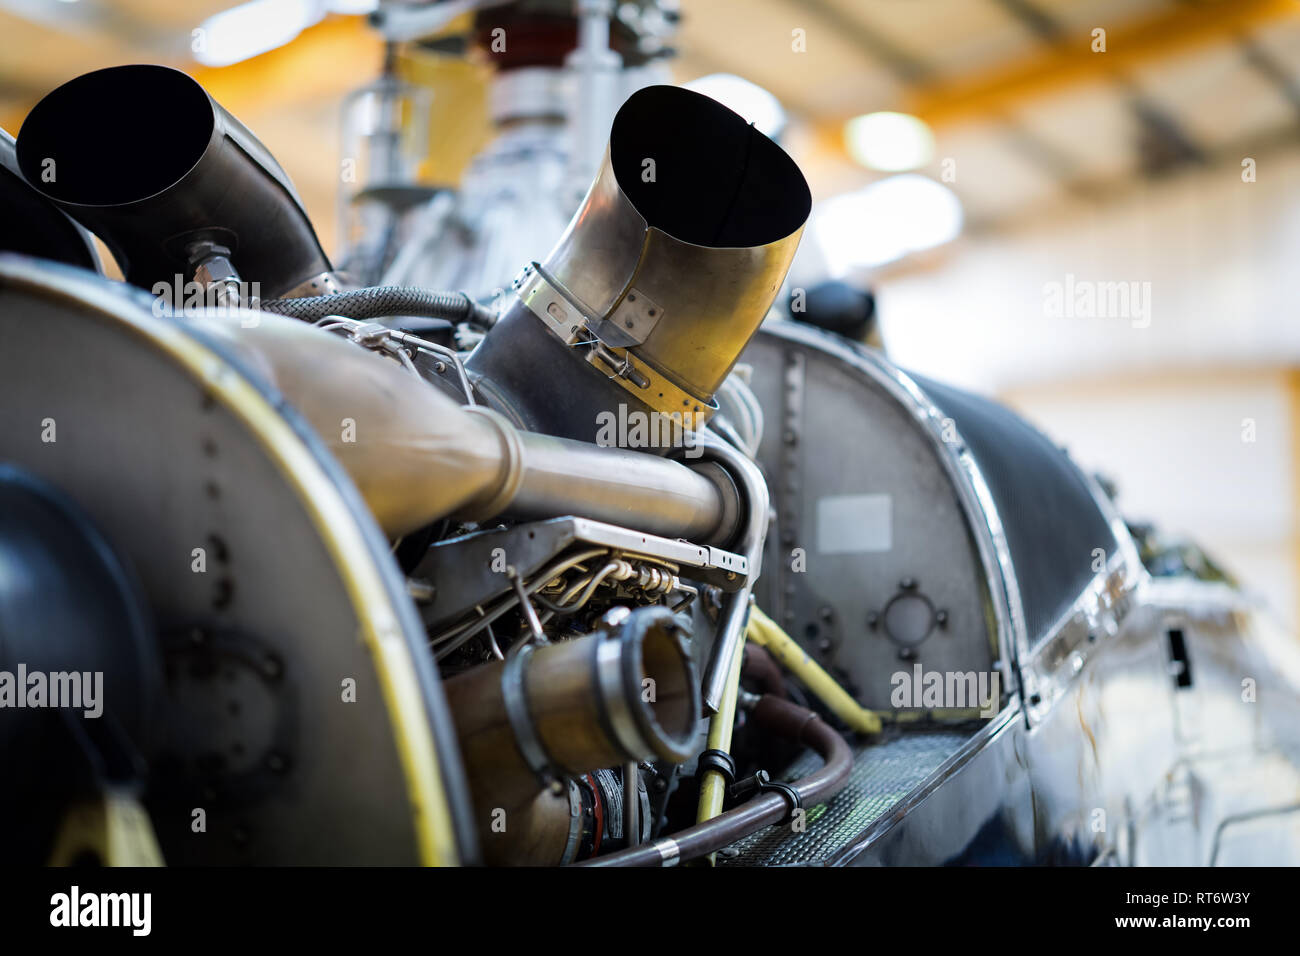 A close up of the engine on an A-109 helicopter undergoing maintenance. - Stock Image